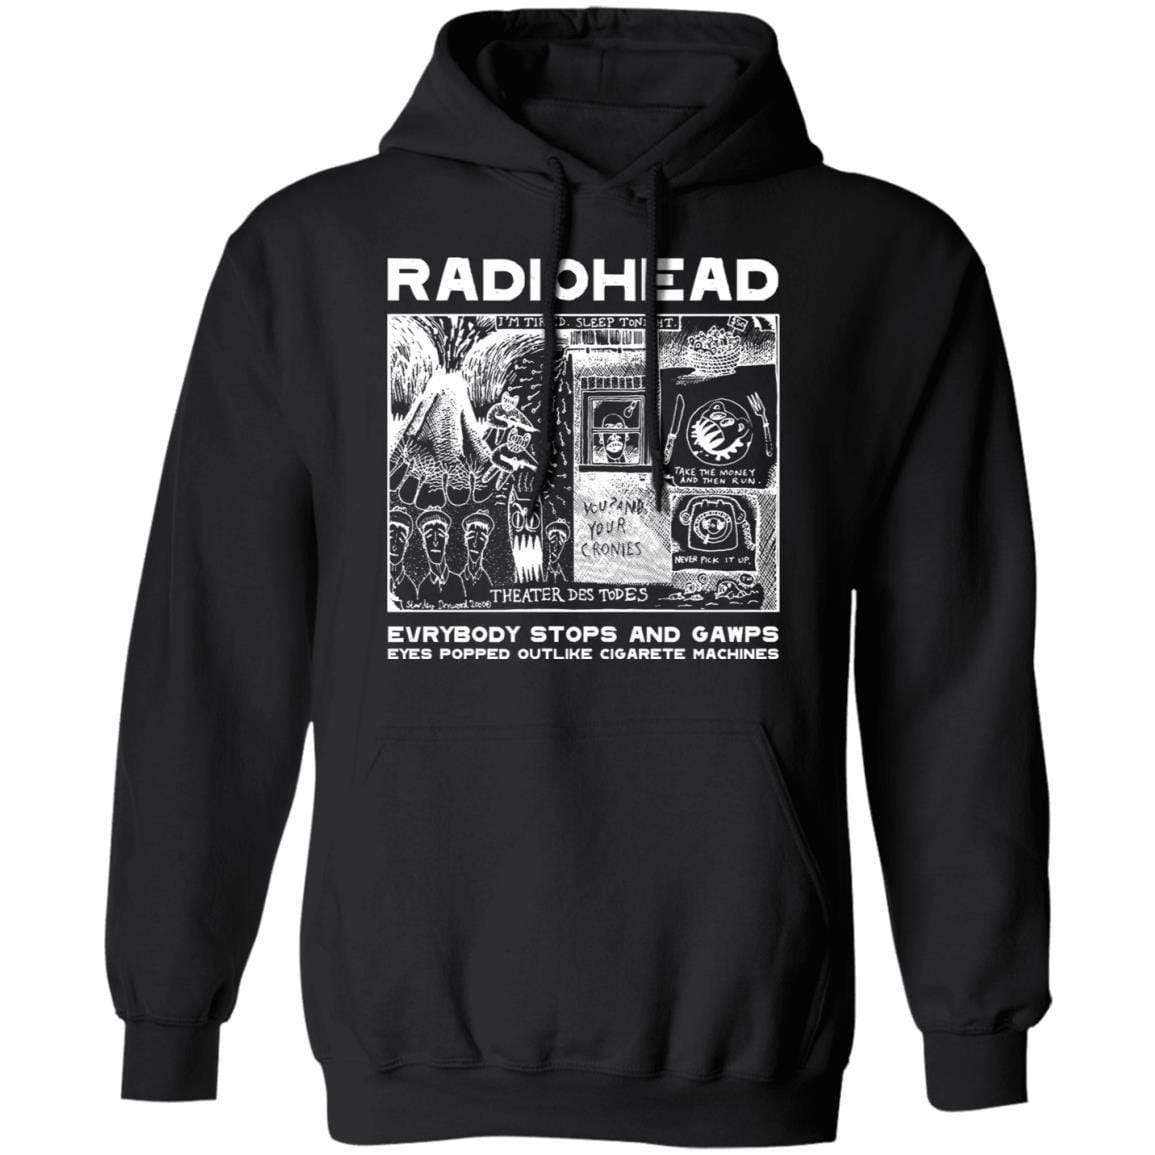 Radiohead Evrybody Stops And Gawps Eyes Popped Outlike Cigarete Machines T-Shirts, Hoodies 541-4740-87589174-23087 - Tee Ript